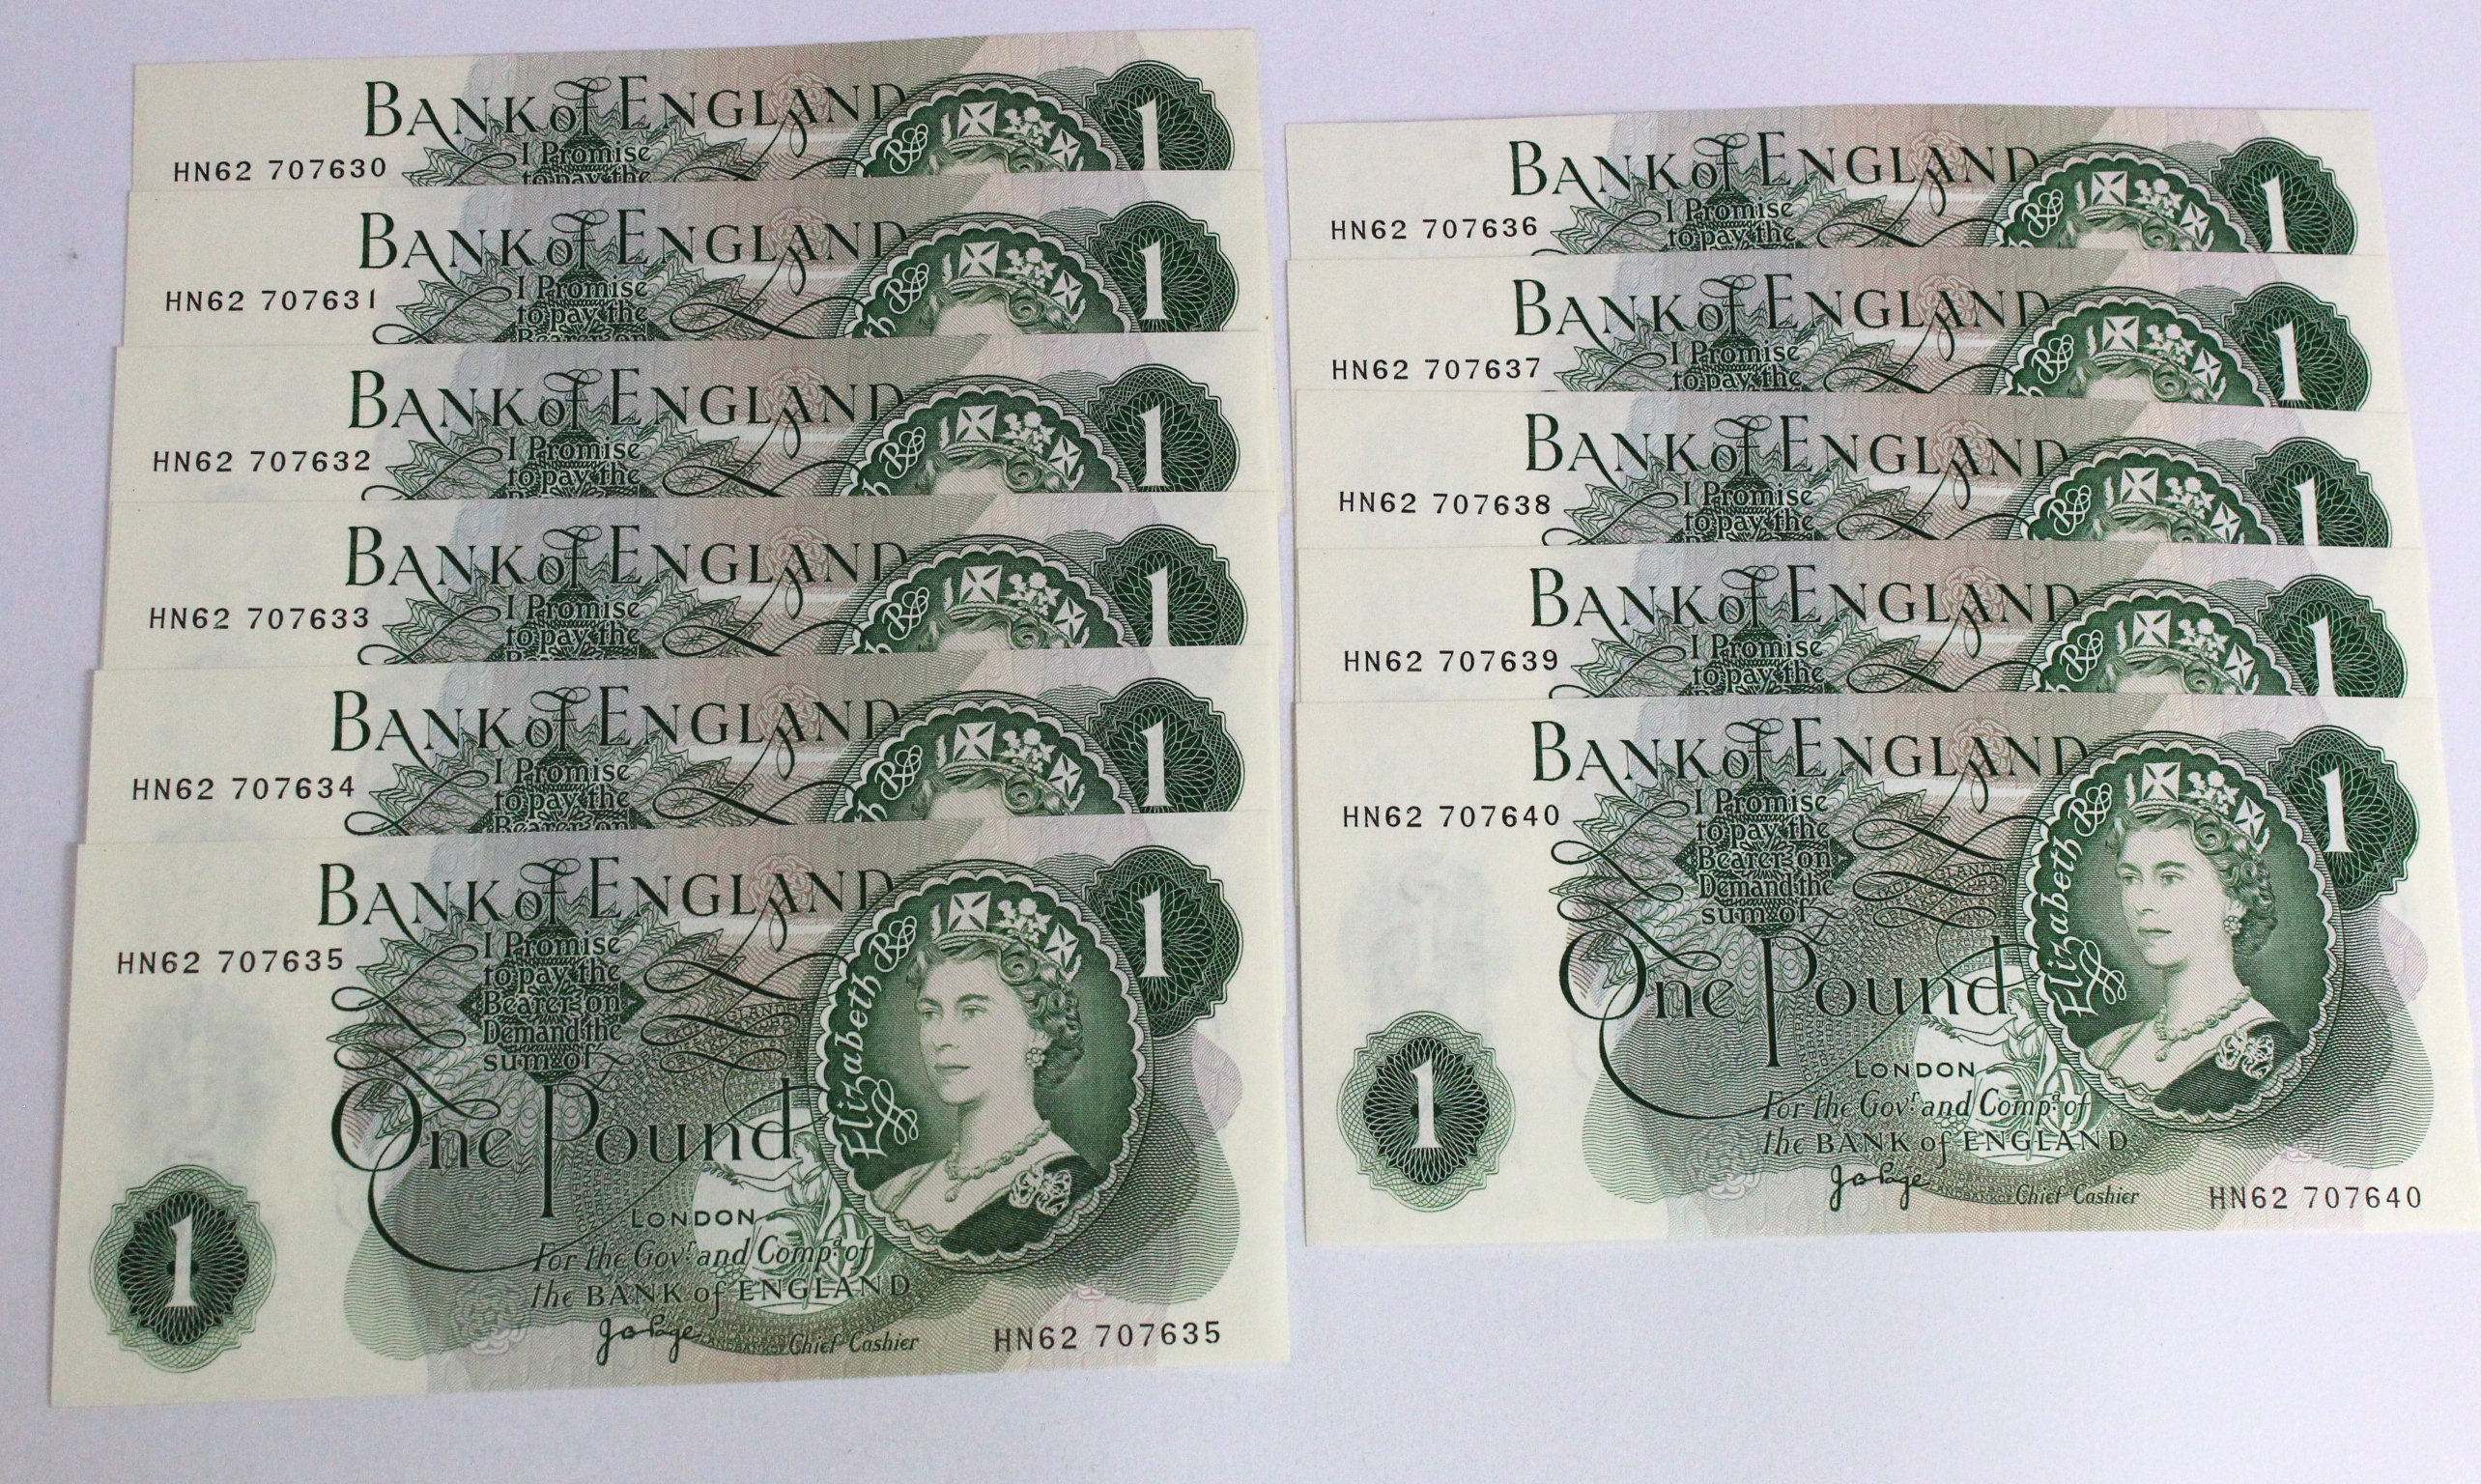 Page 1 Pound (11) issued 1970, a consecutively numbered run of 11 notes serial HN62 707630 - HN62